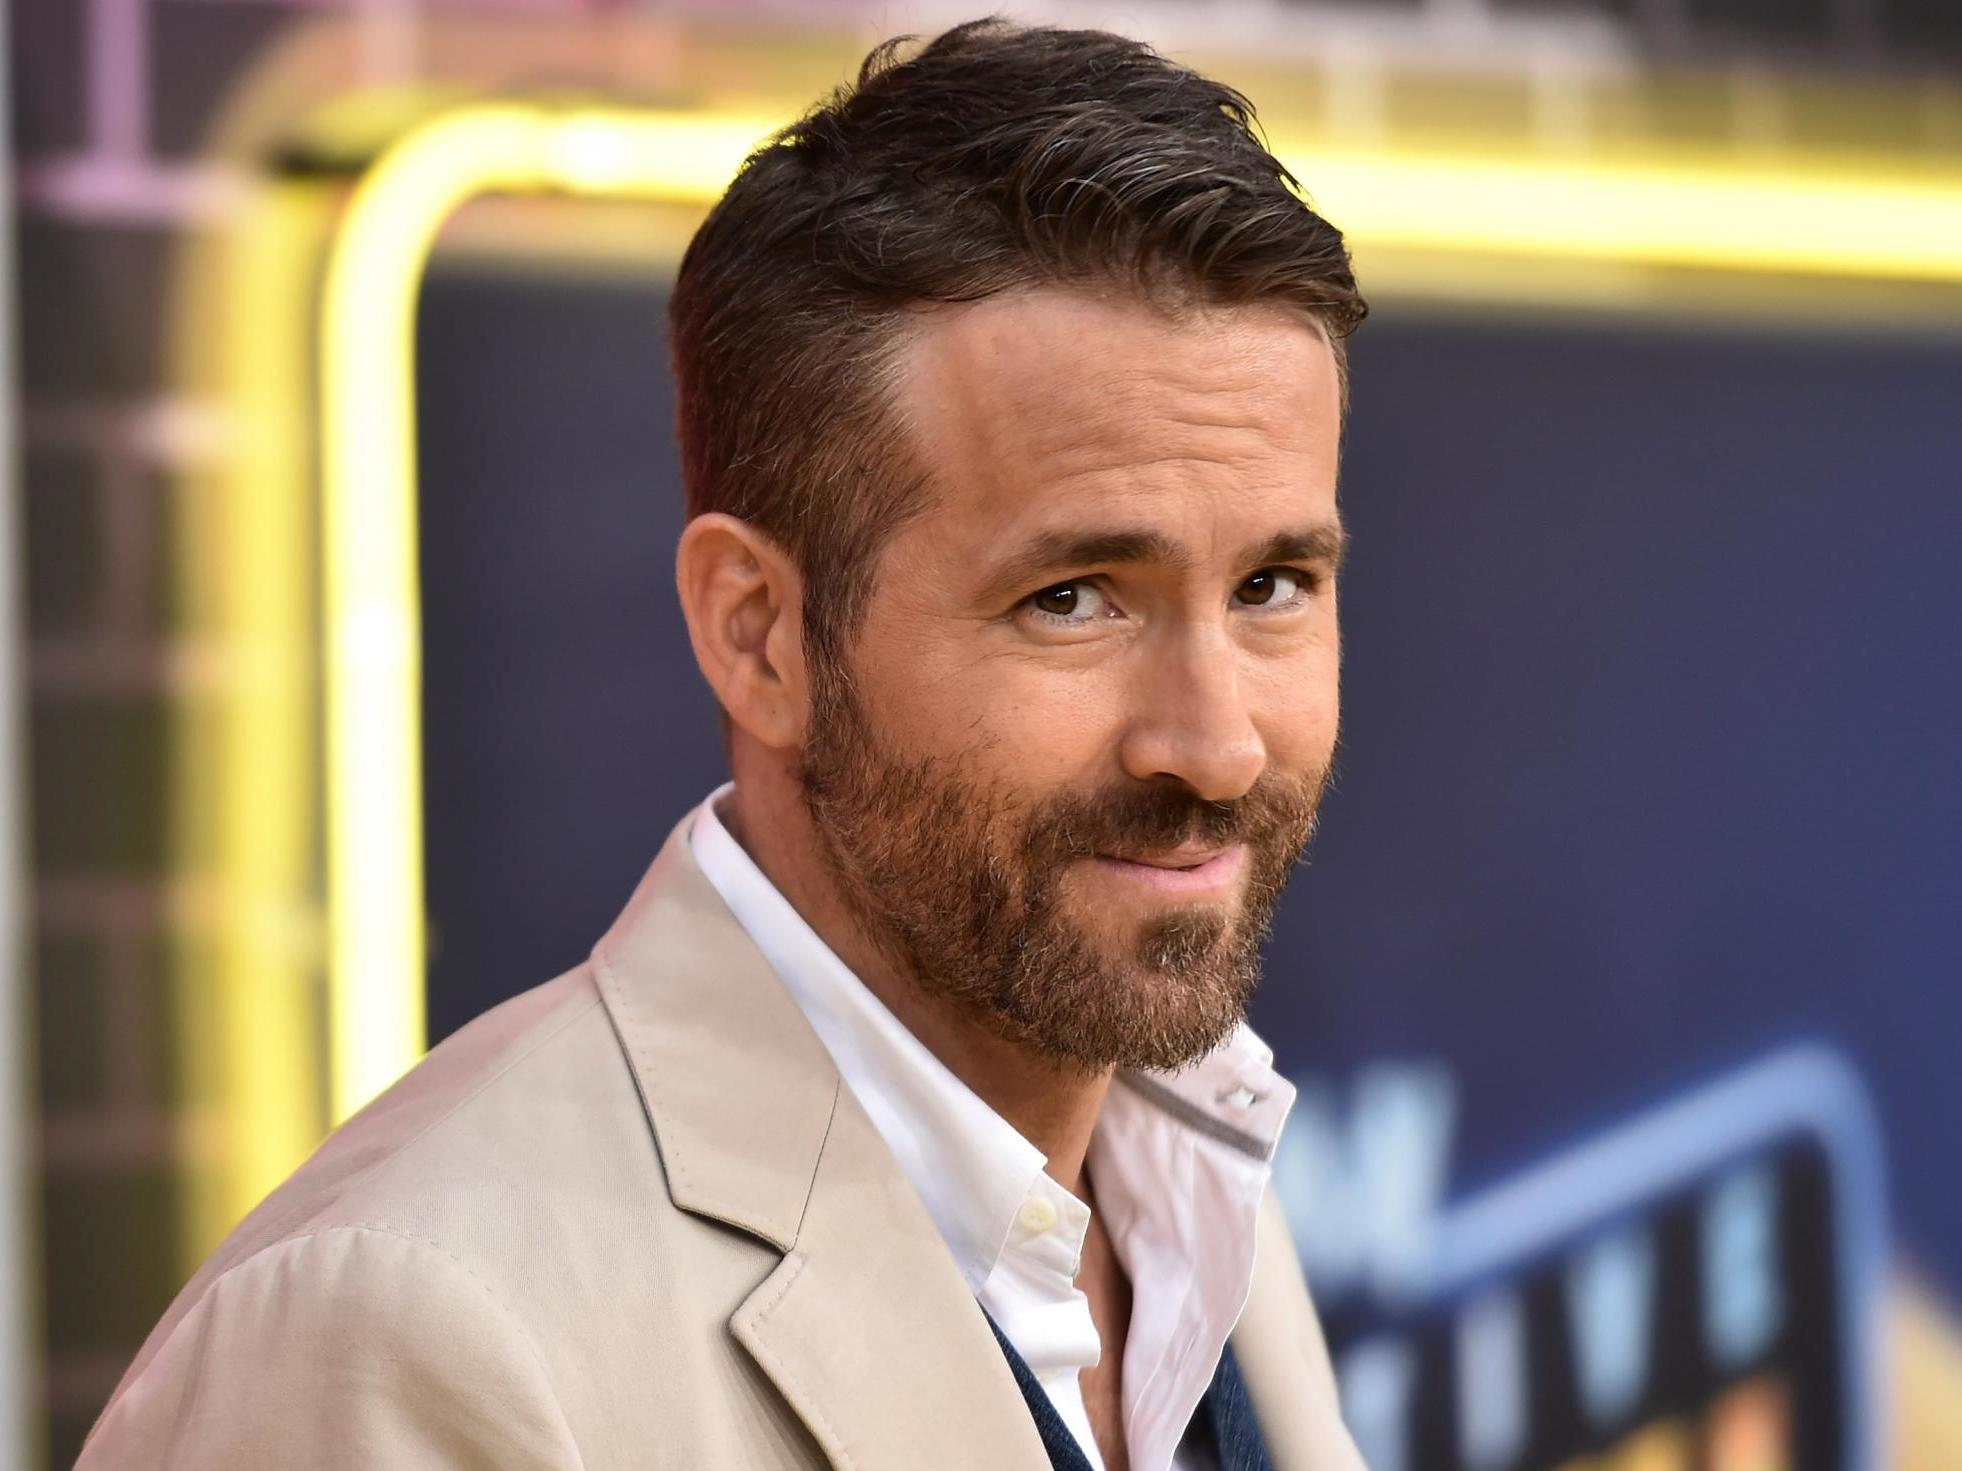 Ryan Reynolds dismisses Scorsese's Netflix and phones argument: 'Watch on whatever f***ing device you want'